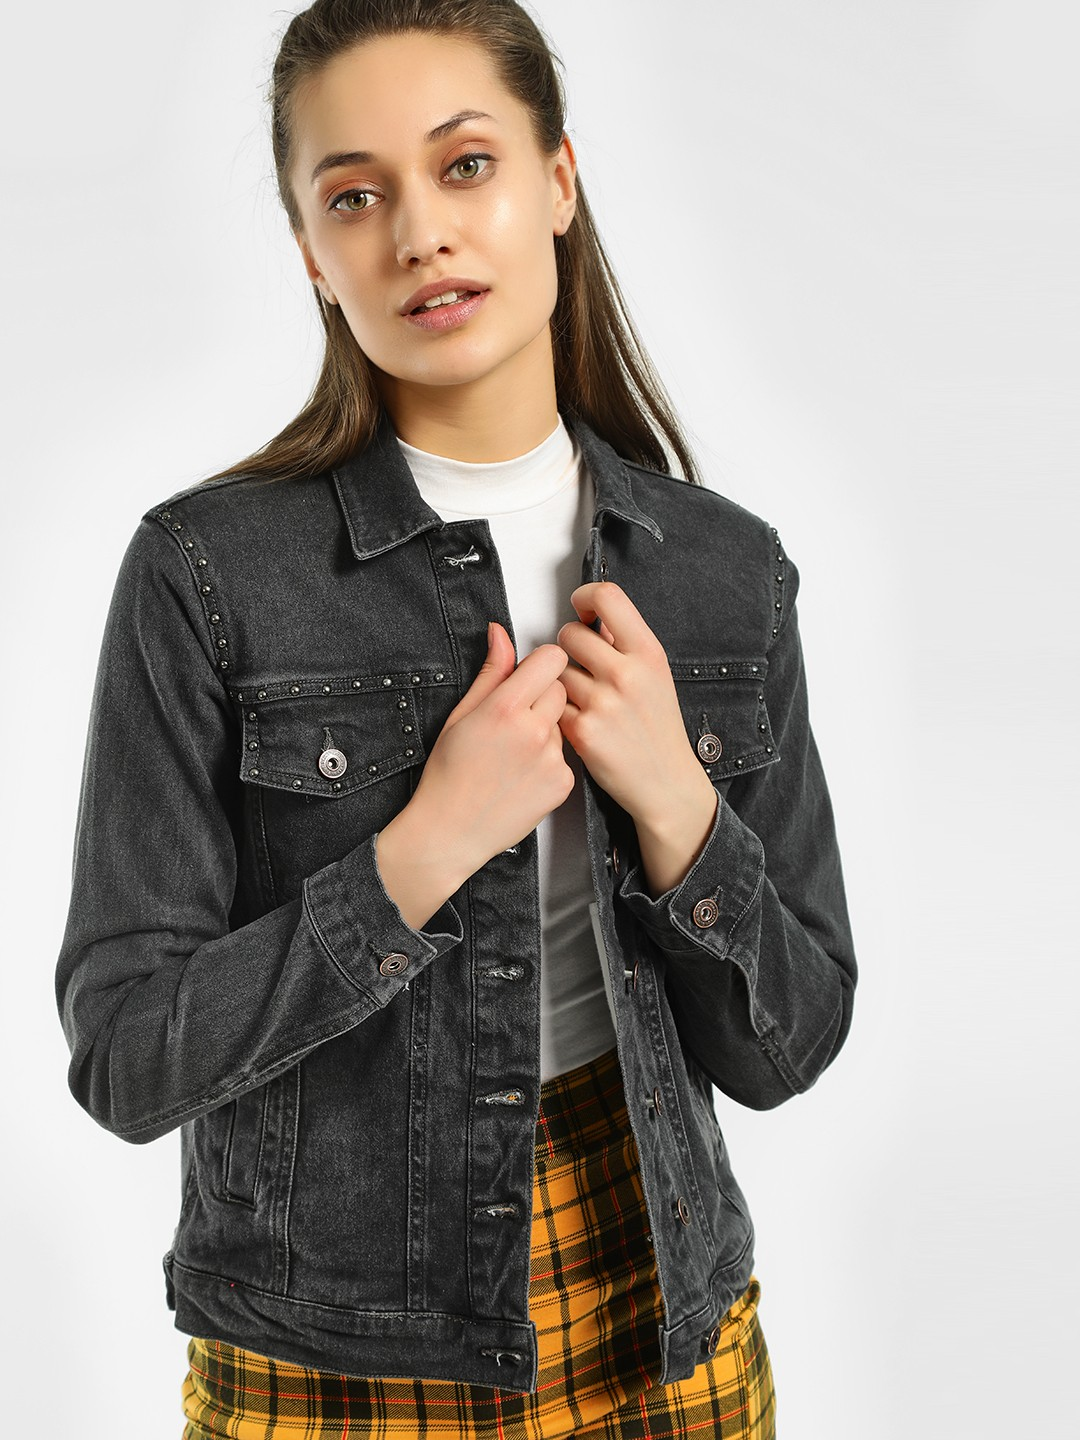 Blue Saint Black Studded Washed Denim Jacket 1